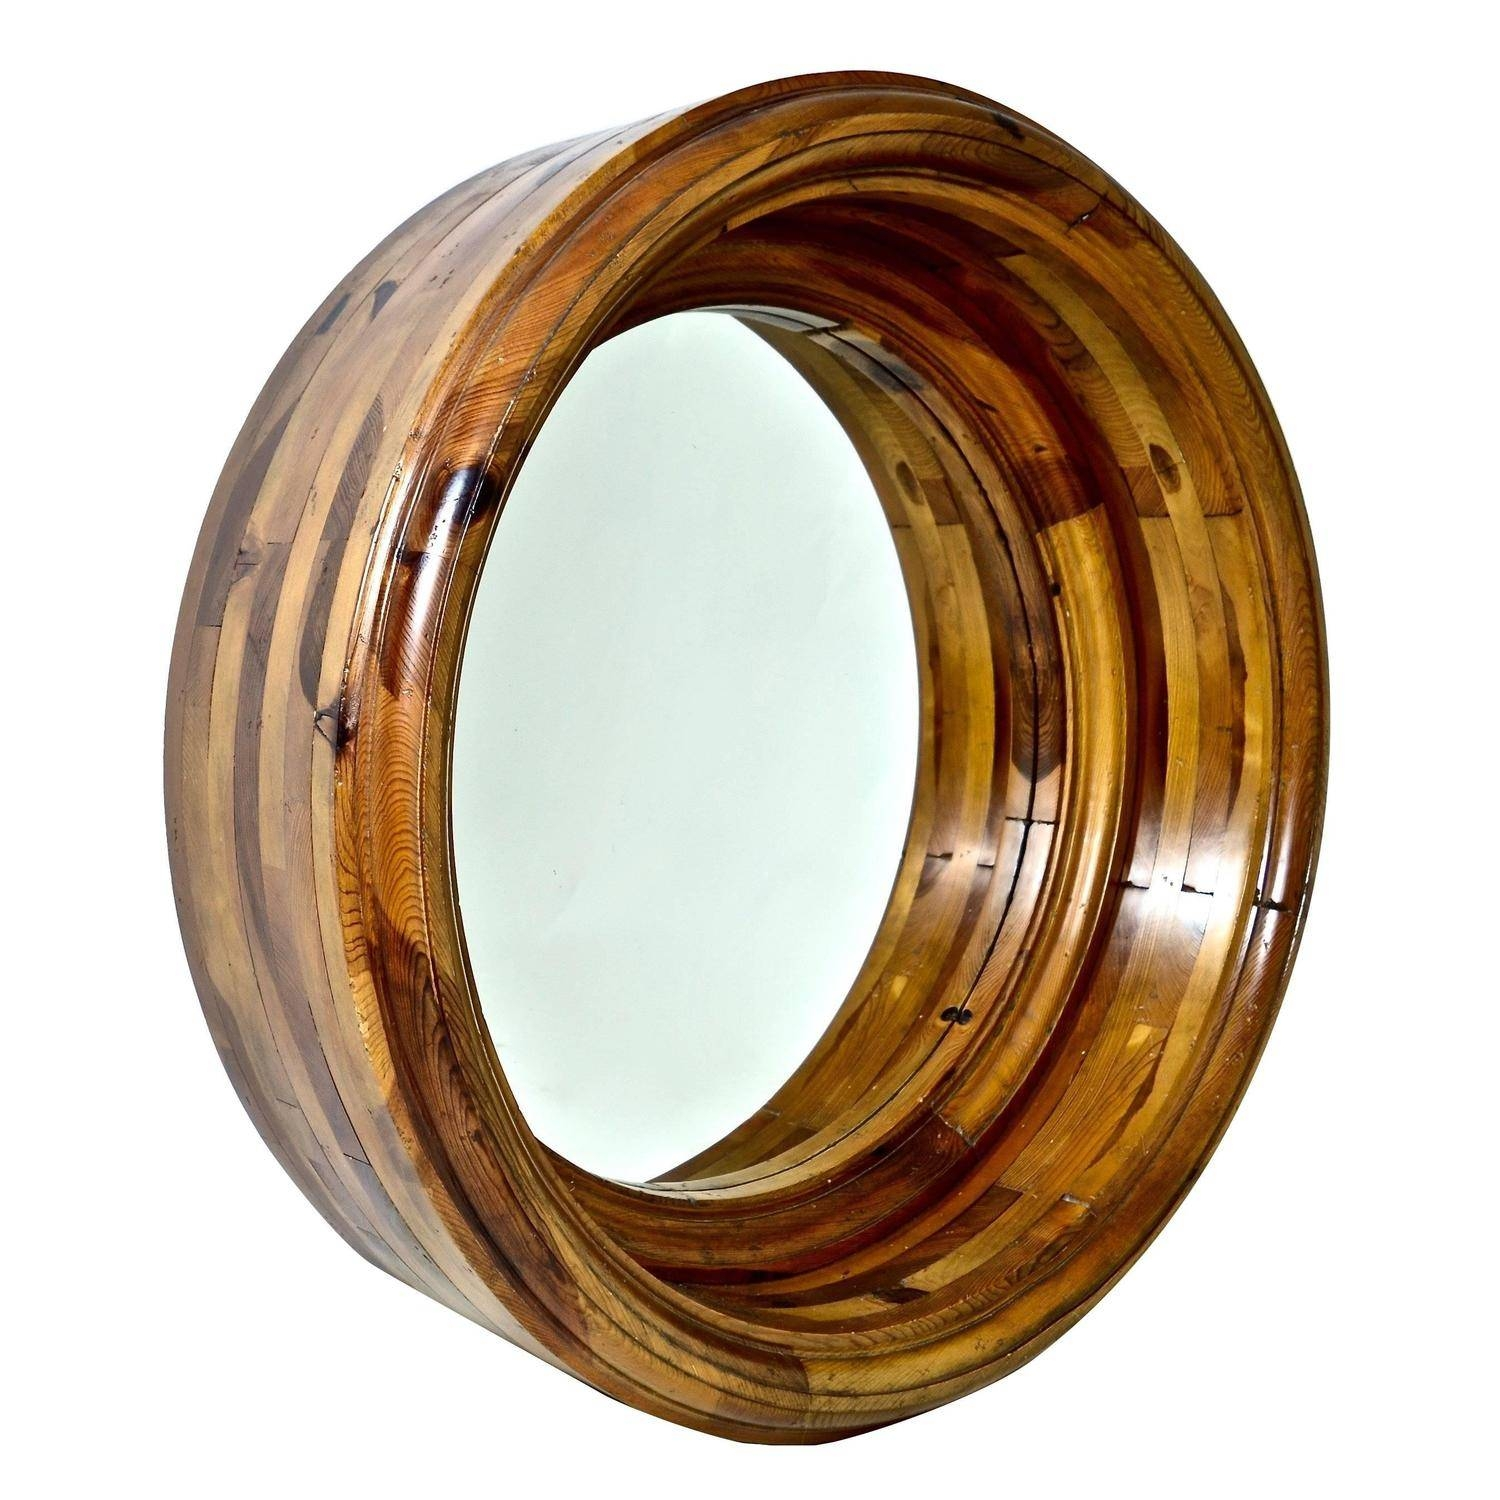 Monumental Ralph Lauren Porthole Mirror For Sale At 1Stdibs in Porthole Mirrors (Image 4 of 15)